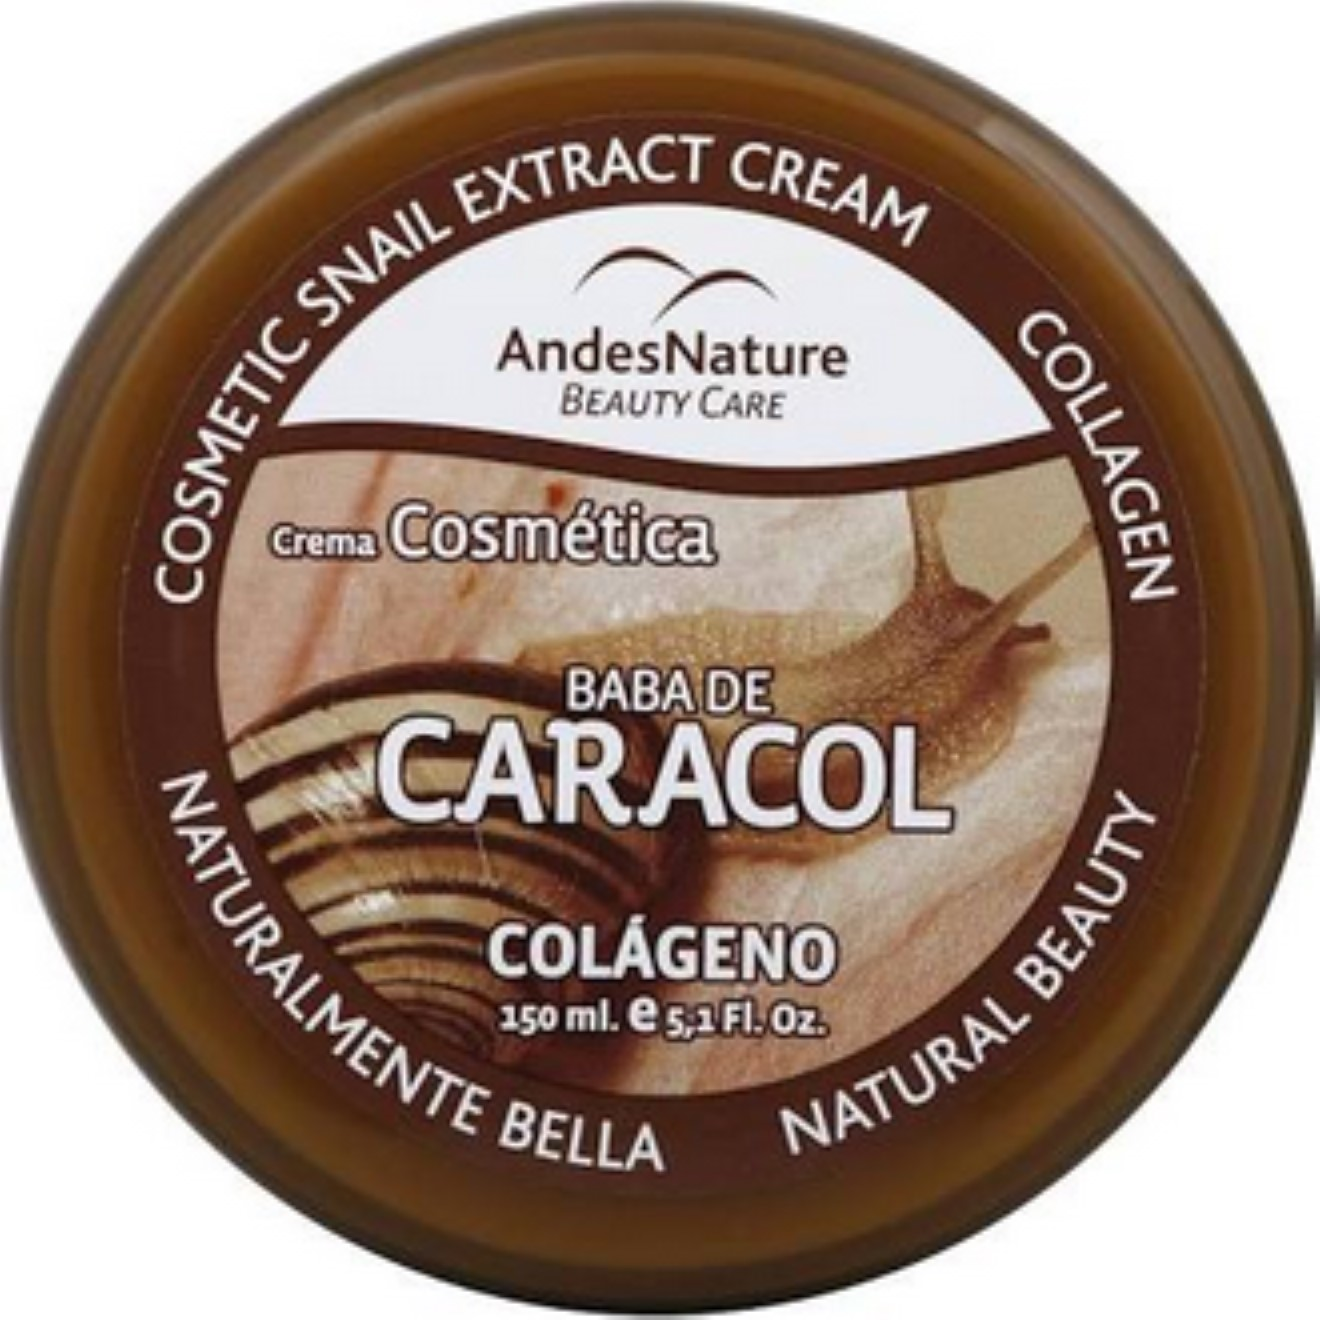 Andes Nature Cosmetic Snail Extract Cream, 5.12 oz